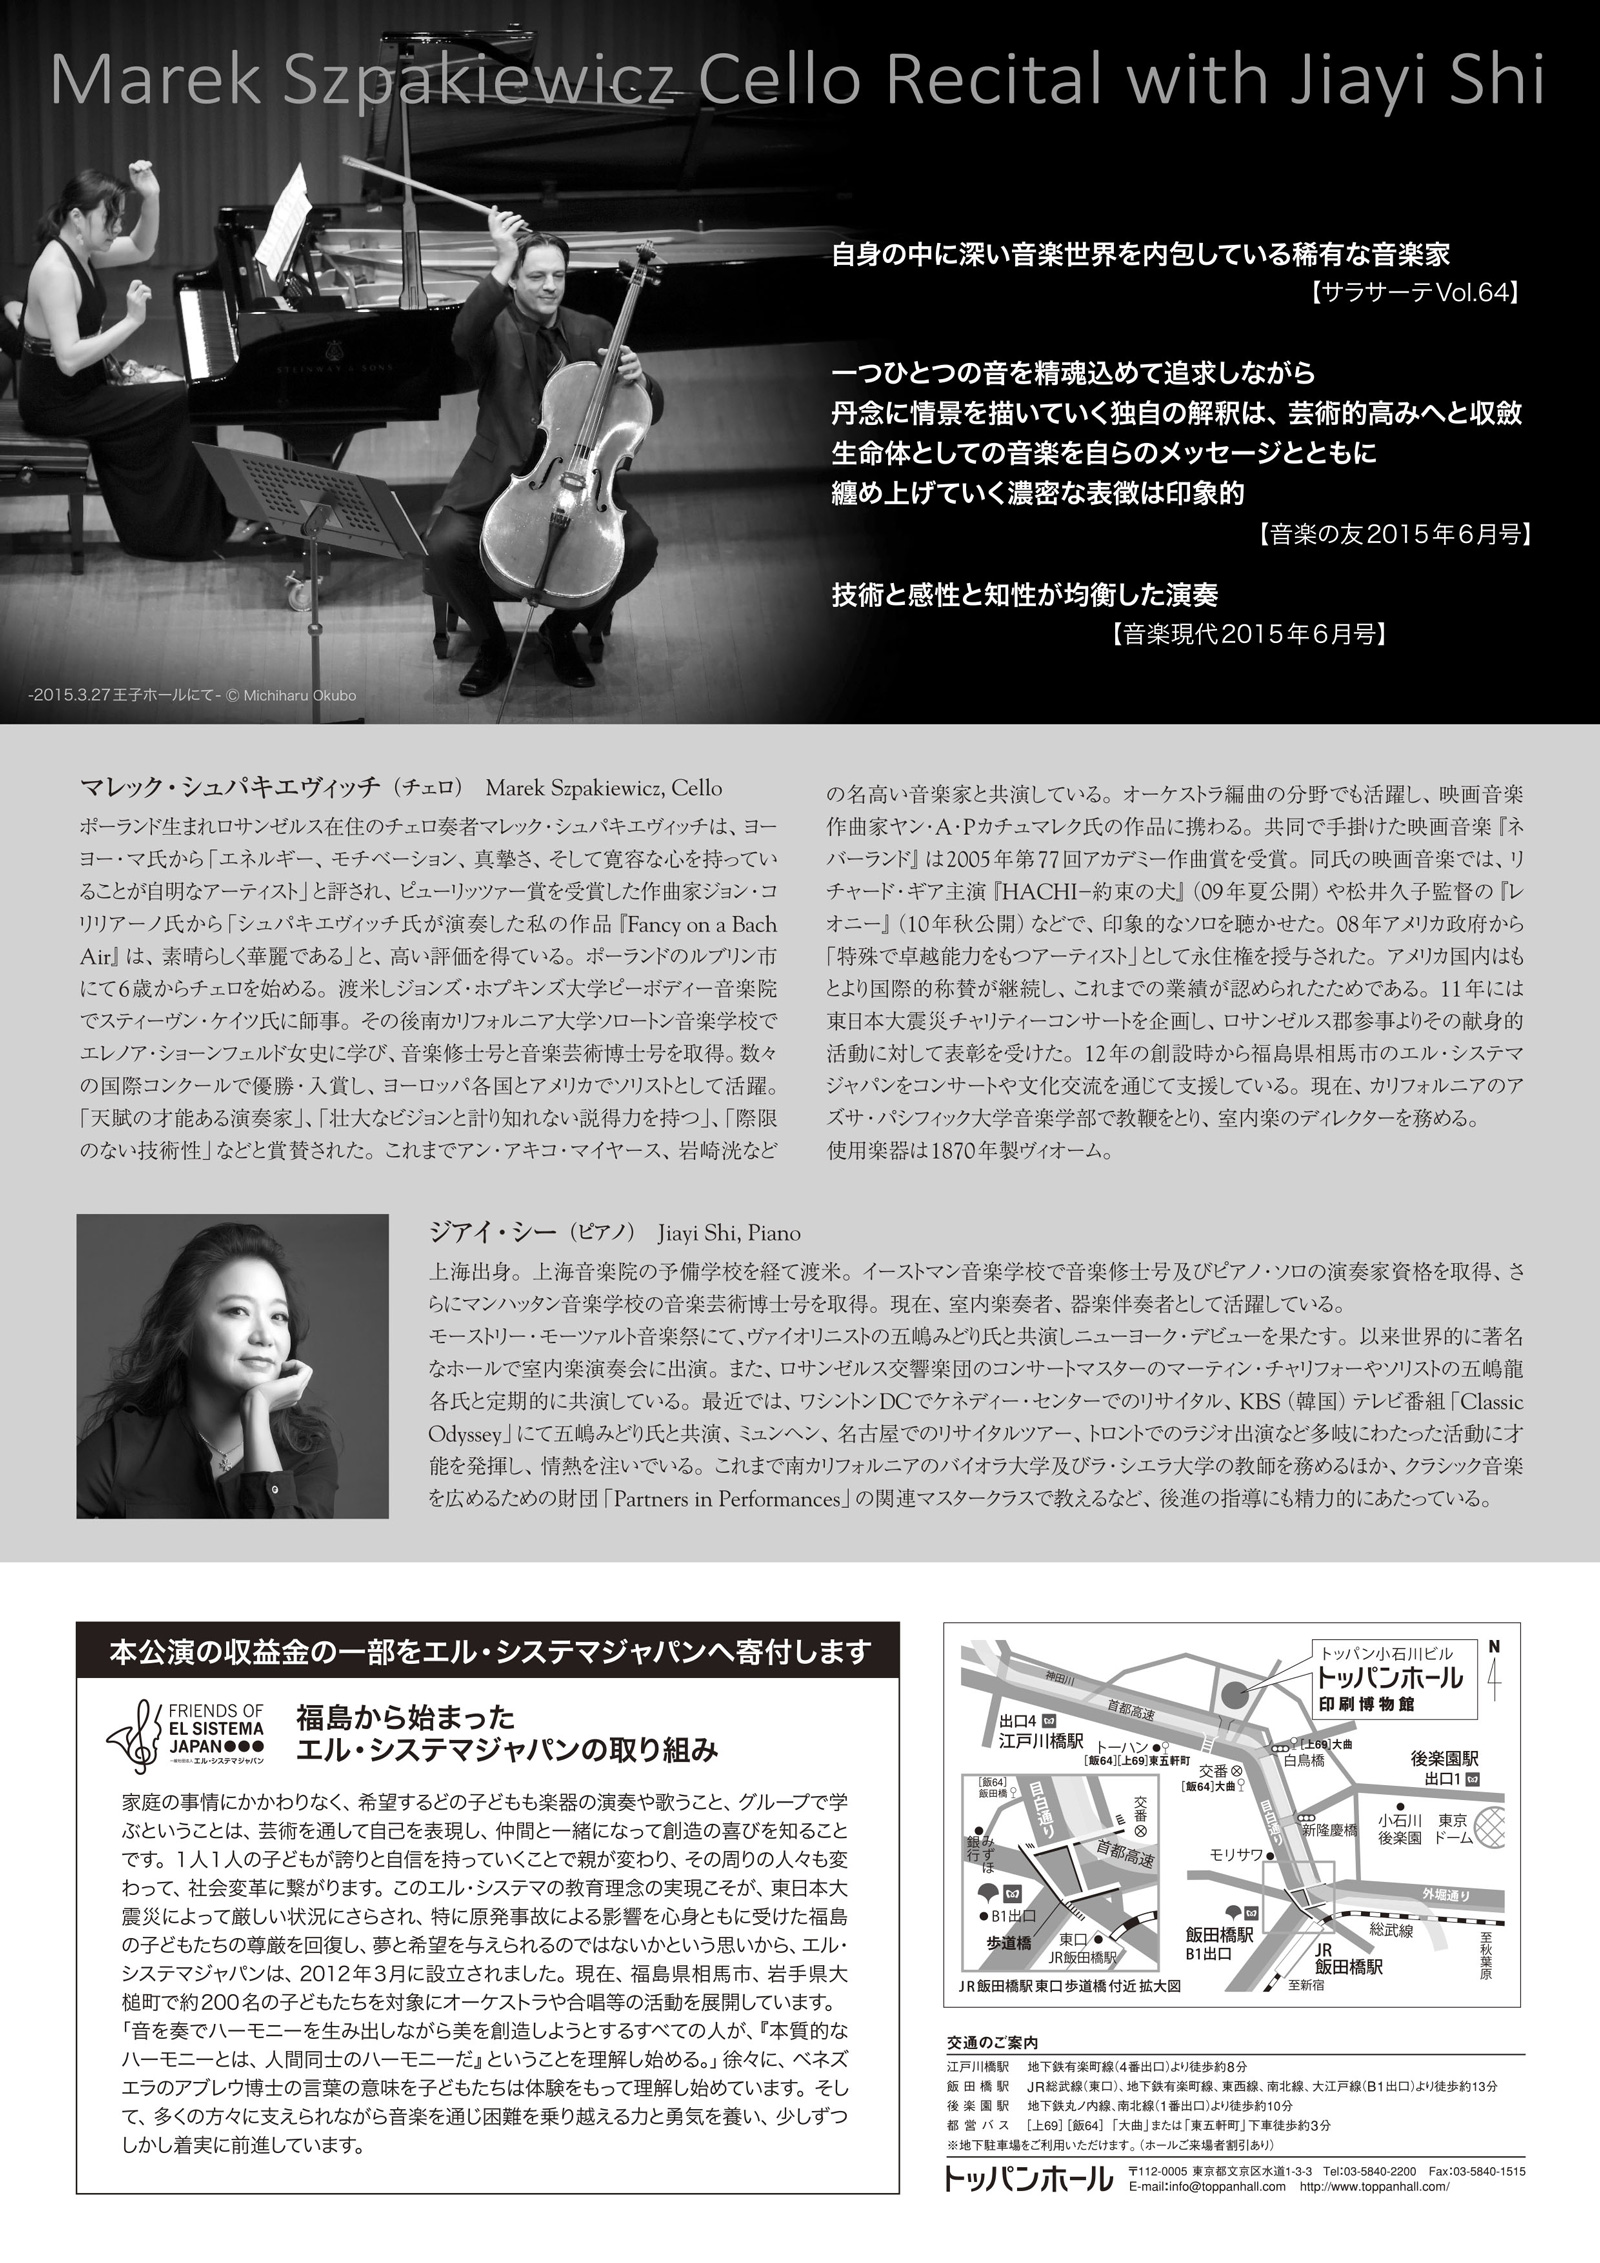 Recital flyer in Japanese